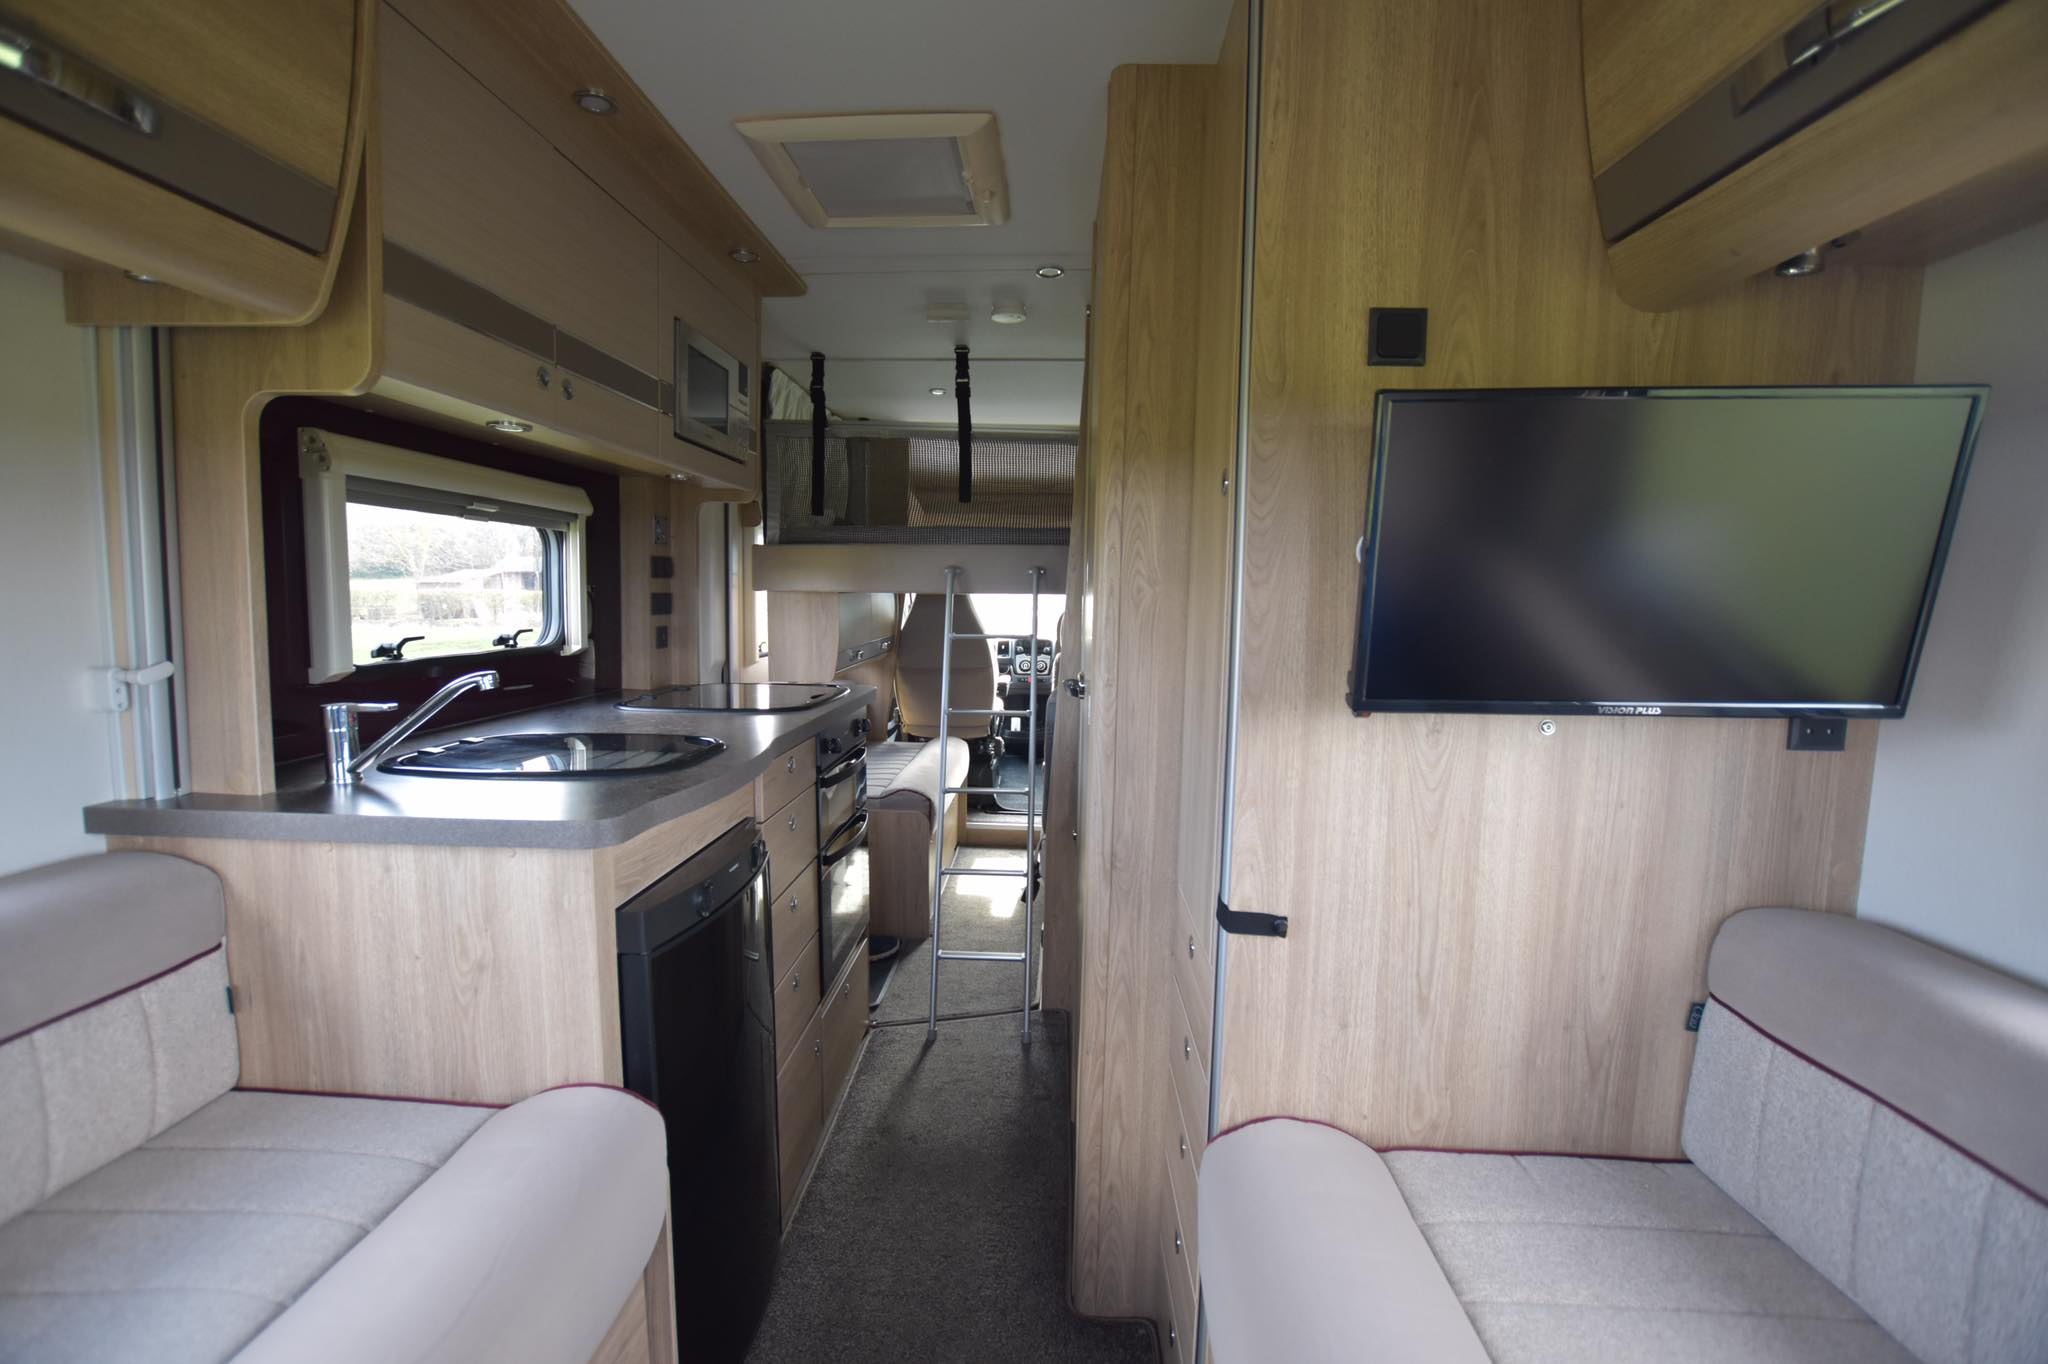 view from inside the motorhome